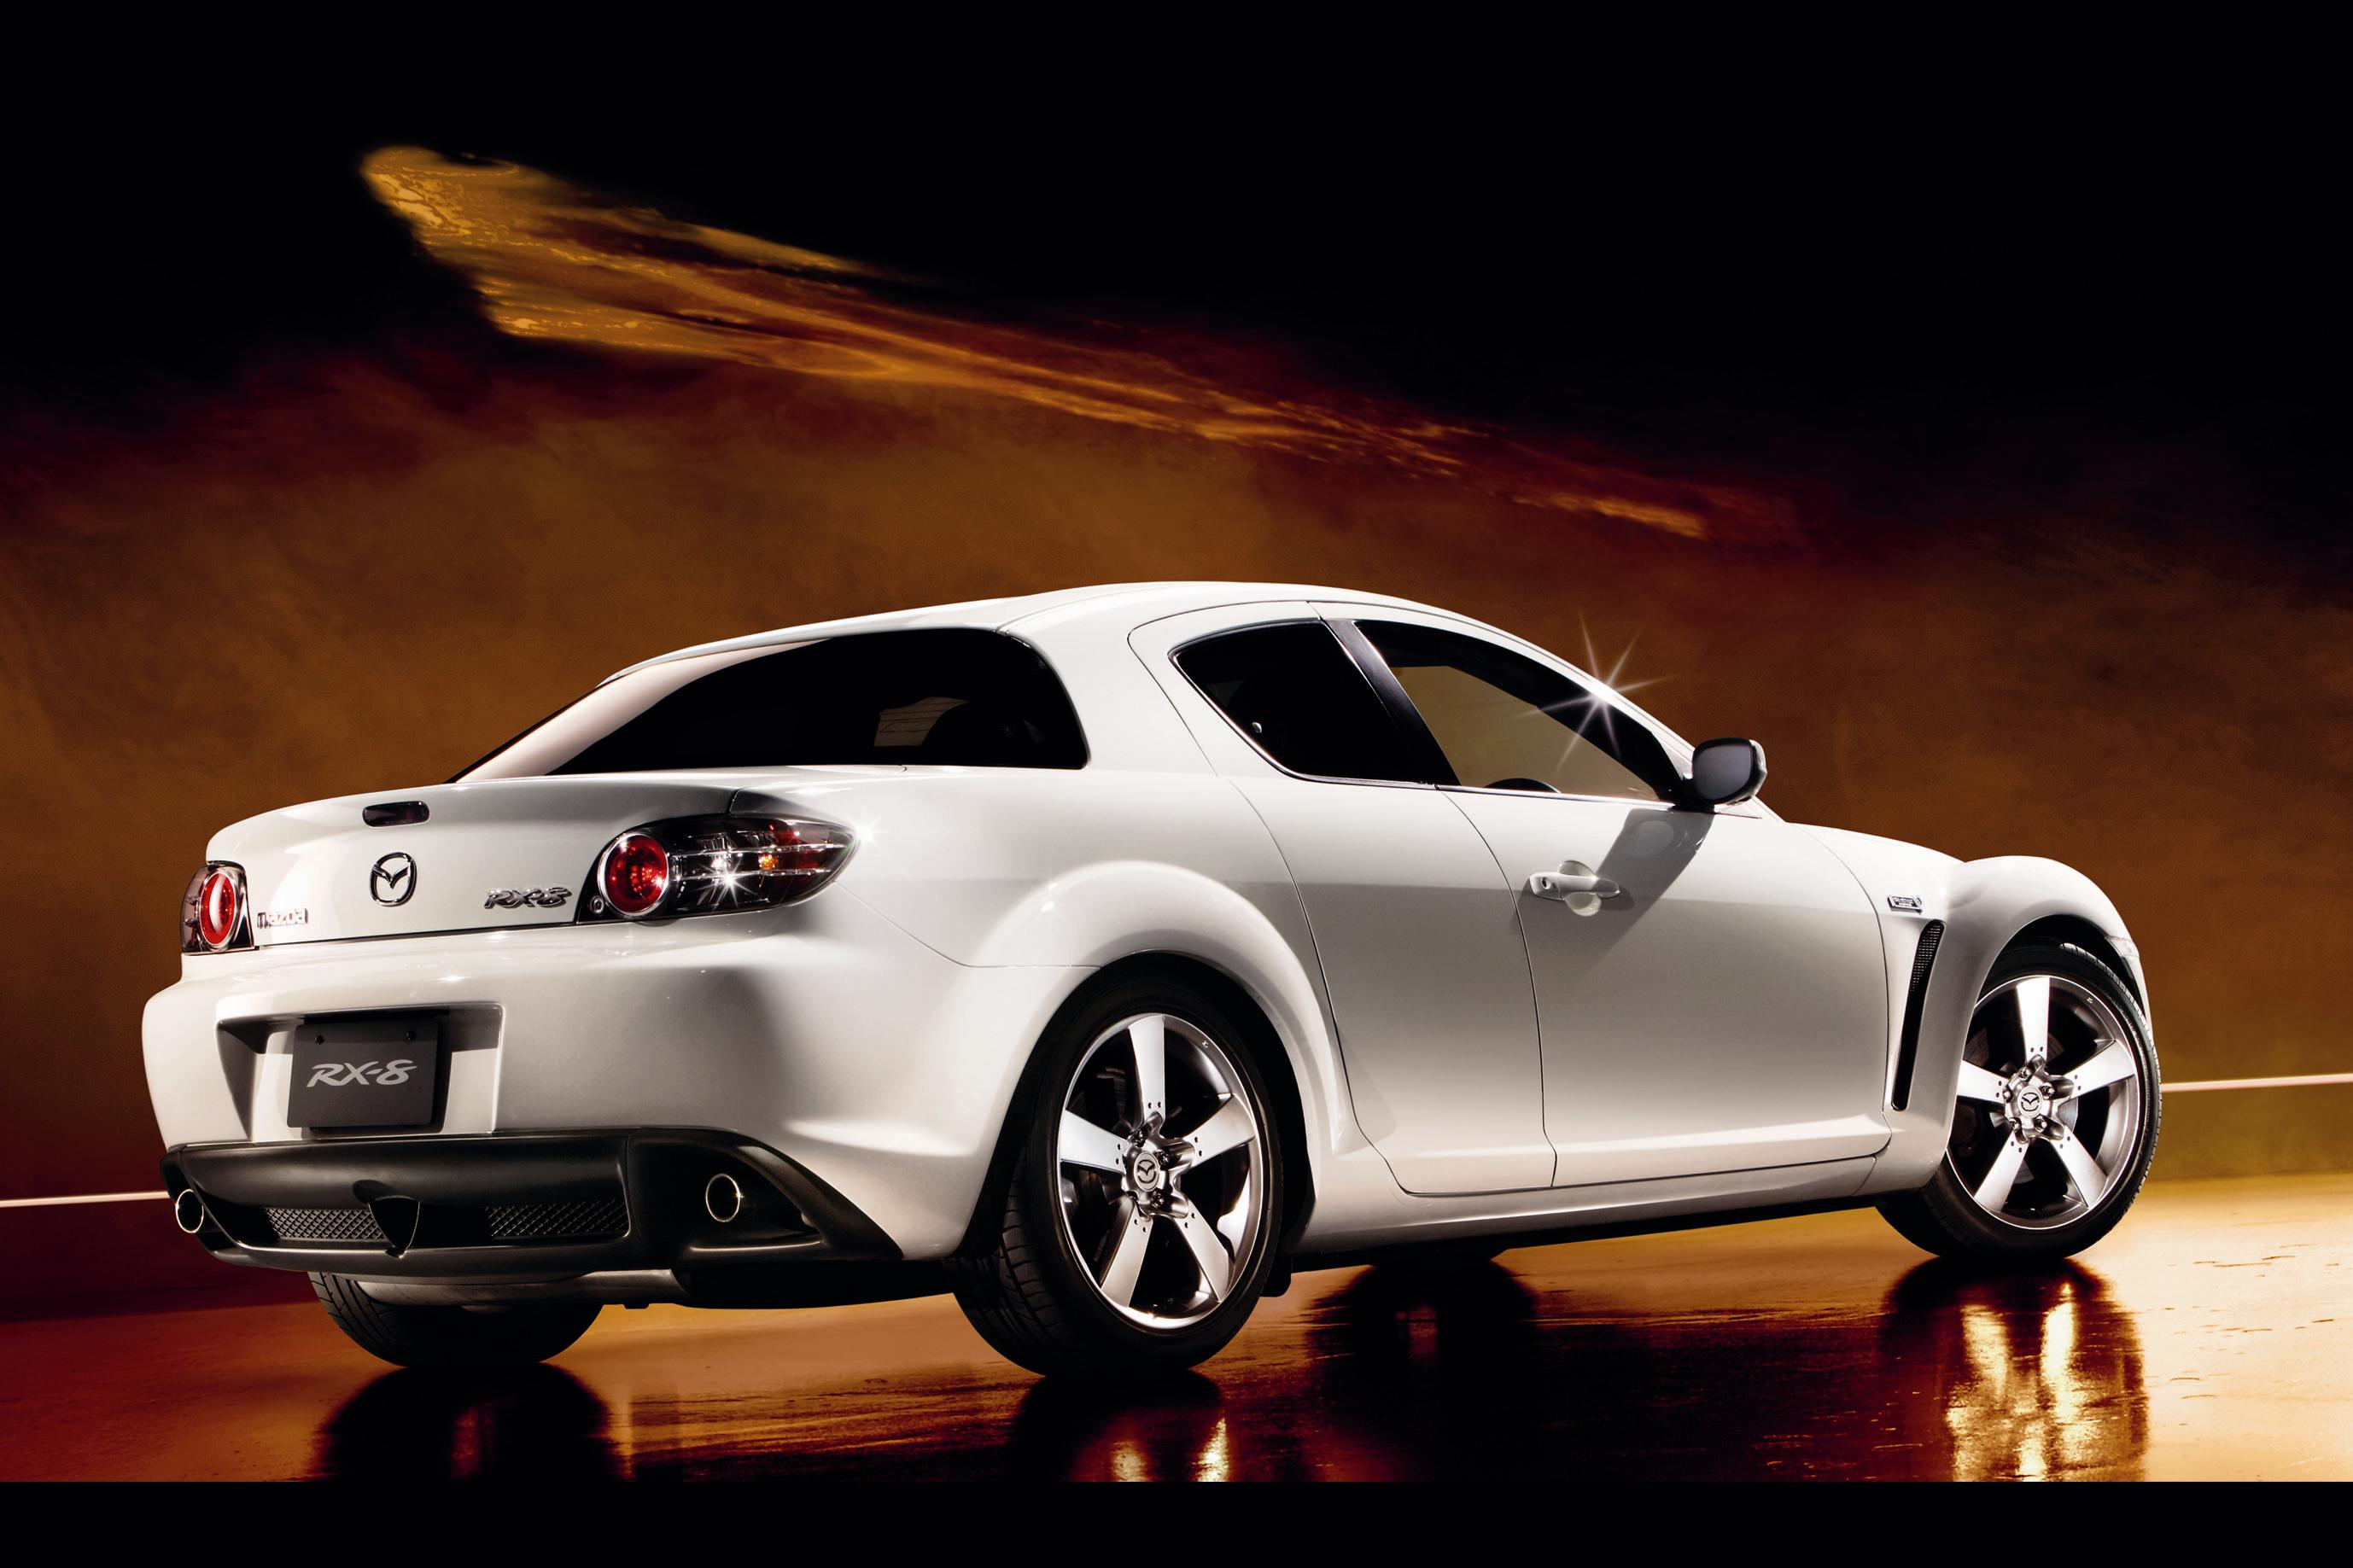 2007 mazda rx-8 rotary engine 40th anniversary review - top speed